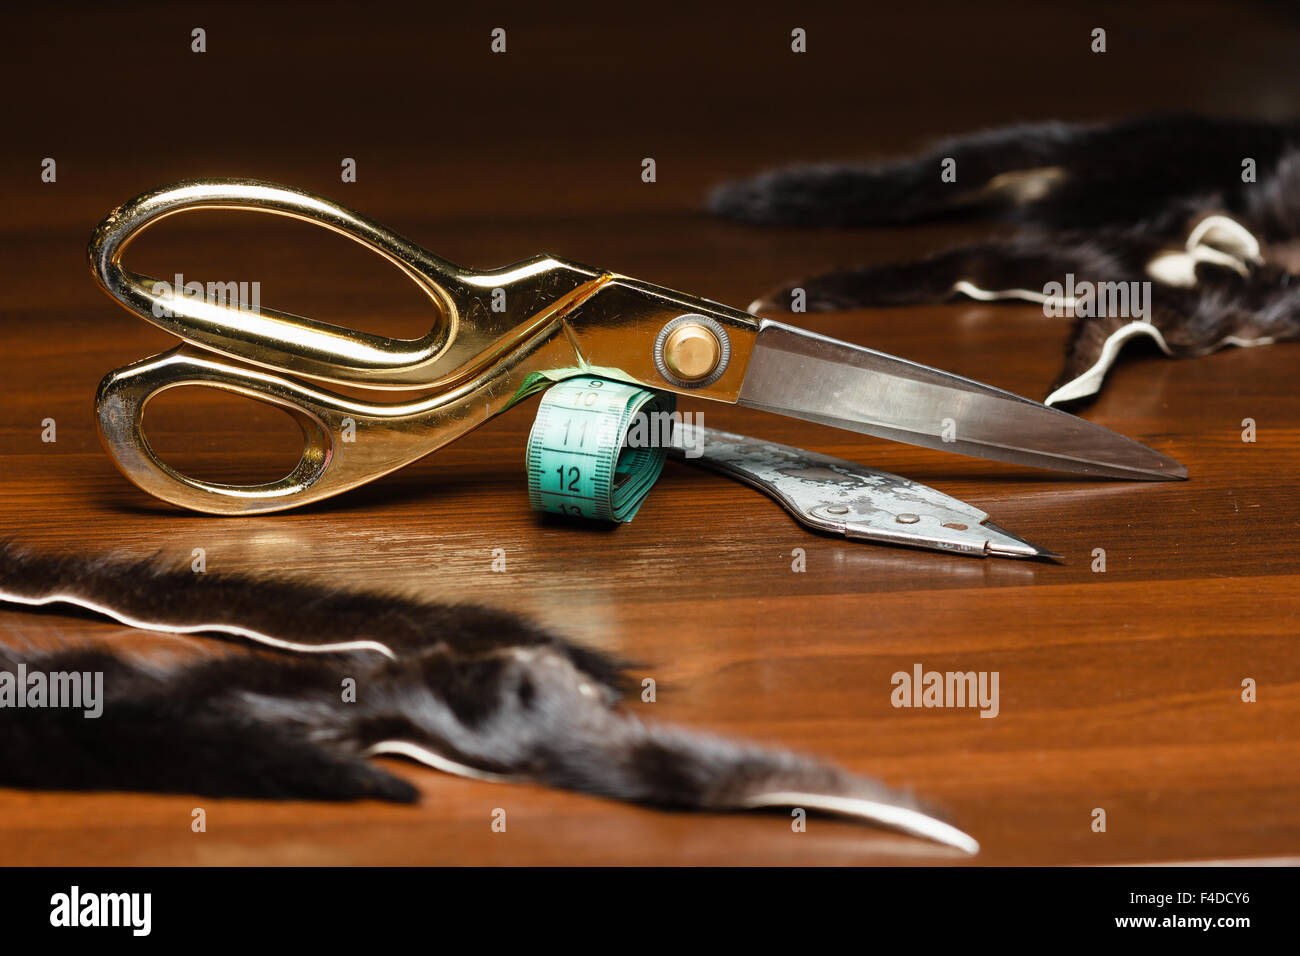 Professional tailor's tools for cutting and sewing, scissors, flexible ruler tape - Stock Image